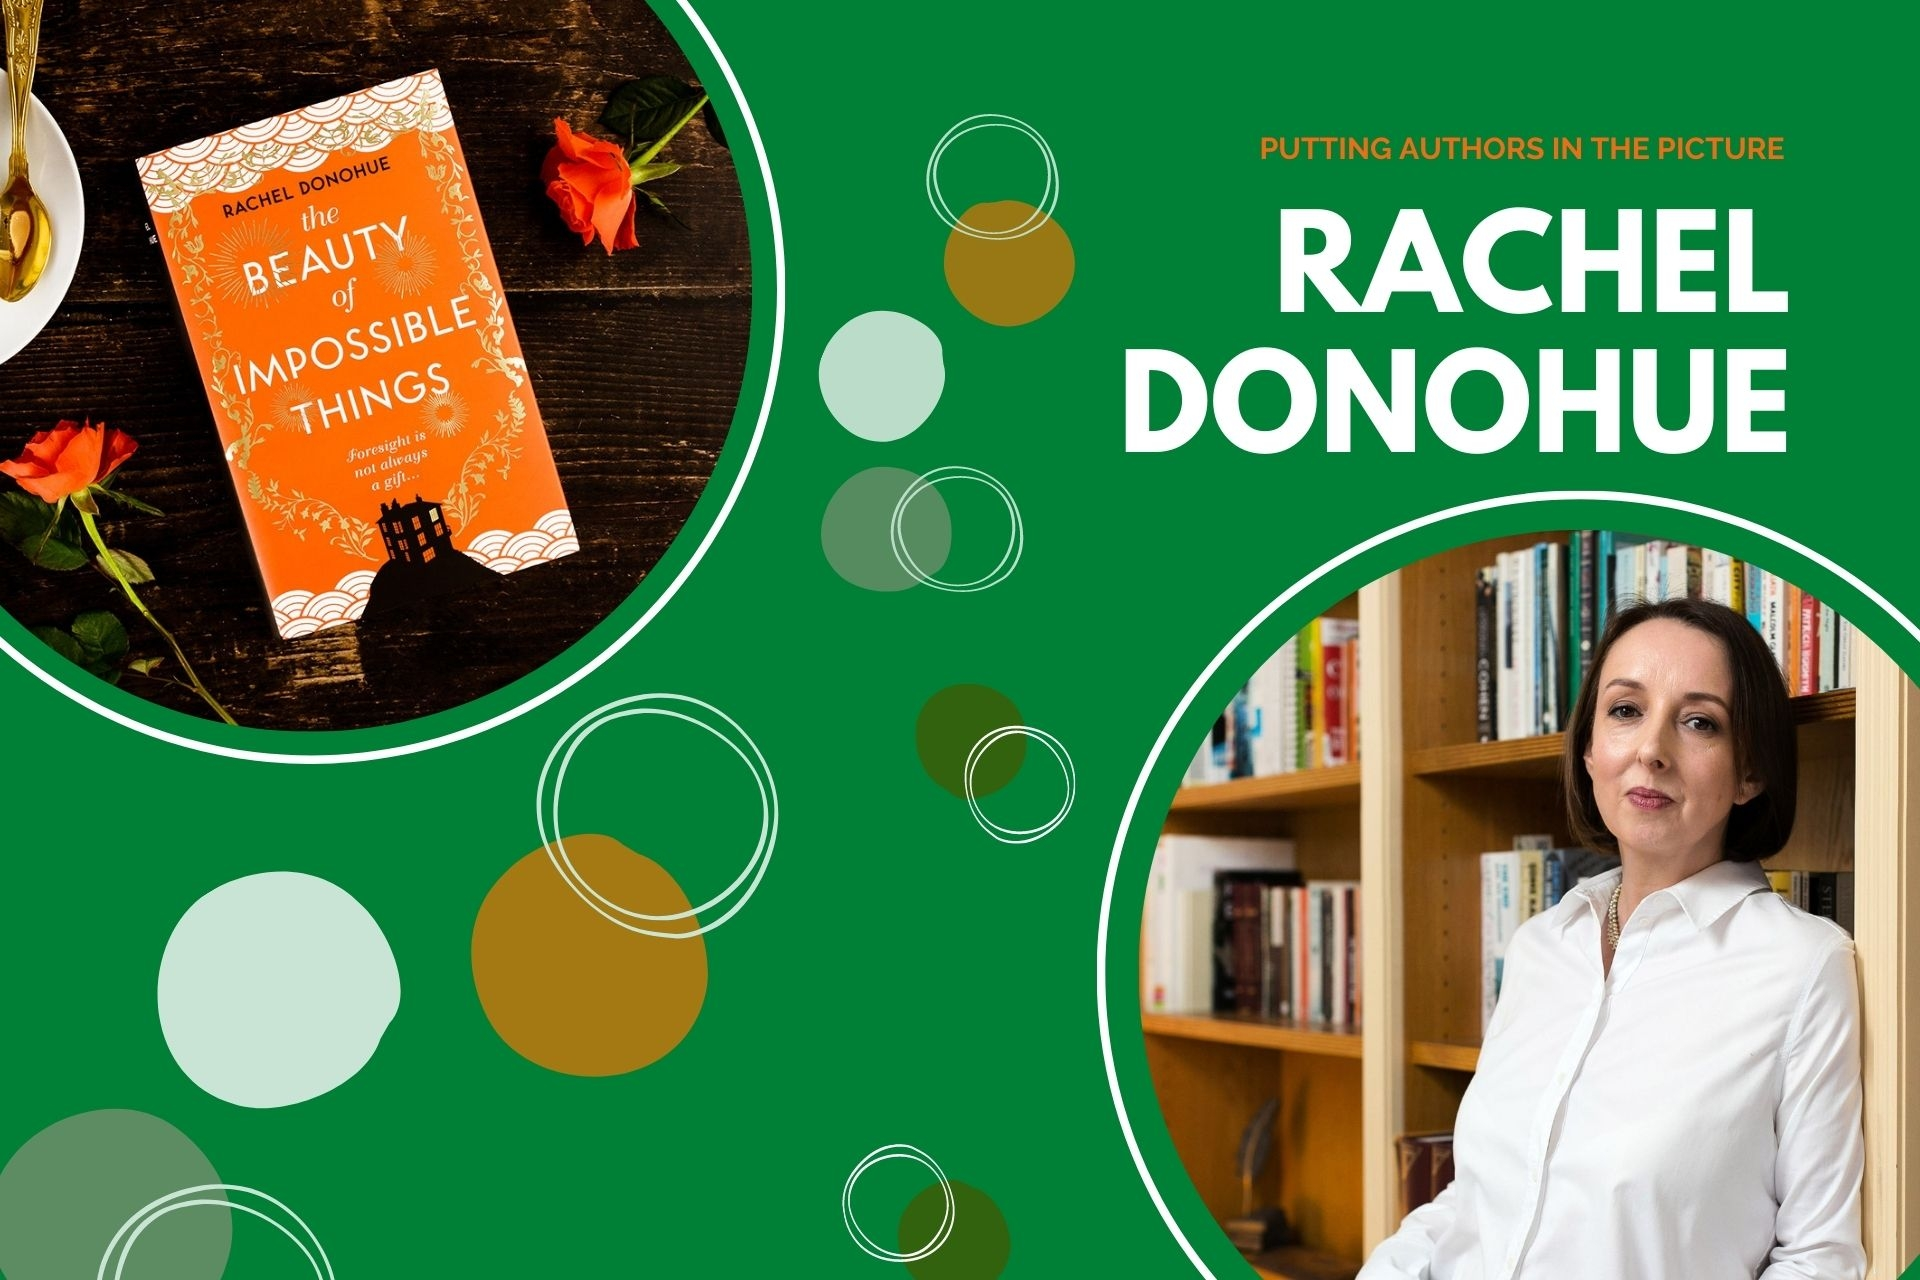 Putting Authors in the Picture #31: Rachel Donohue